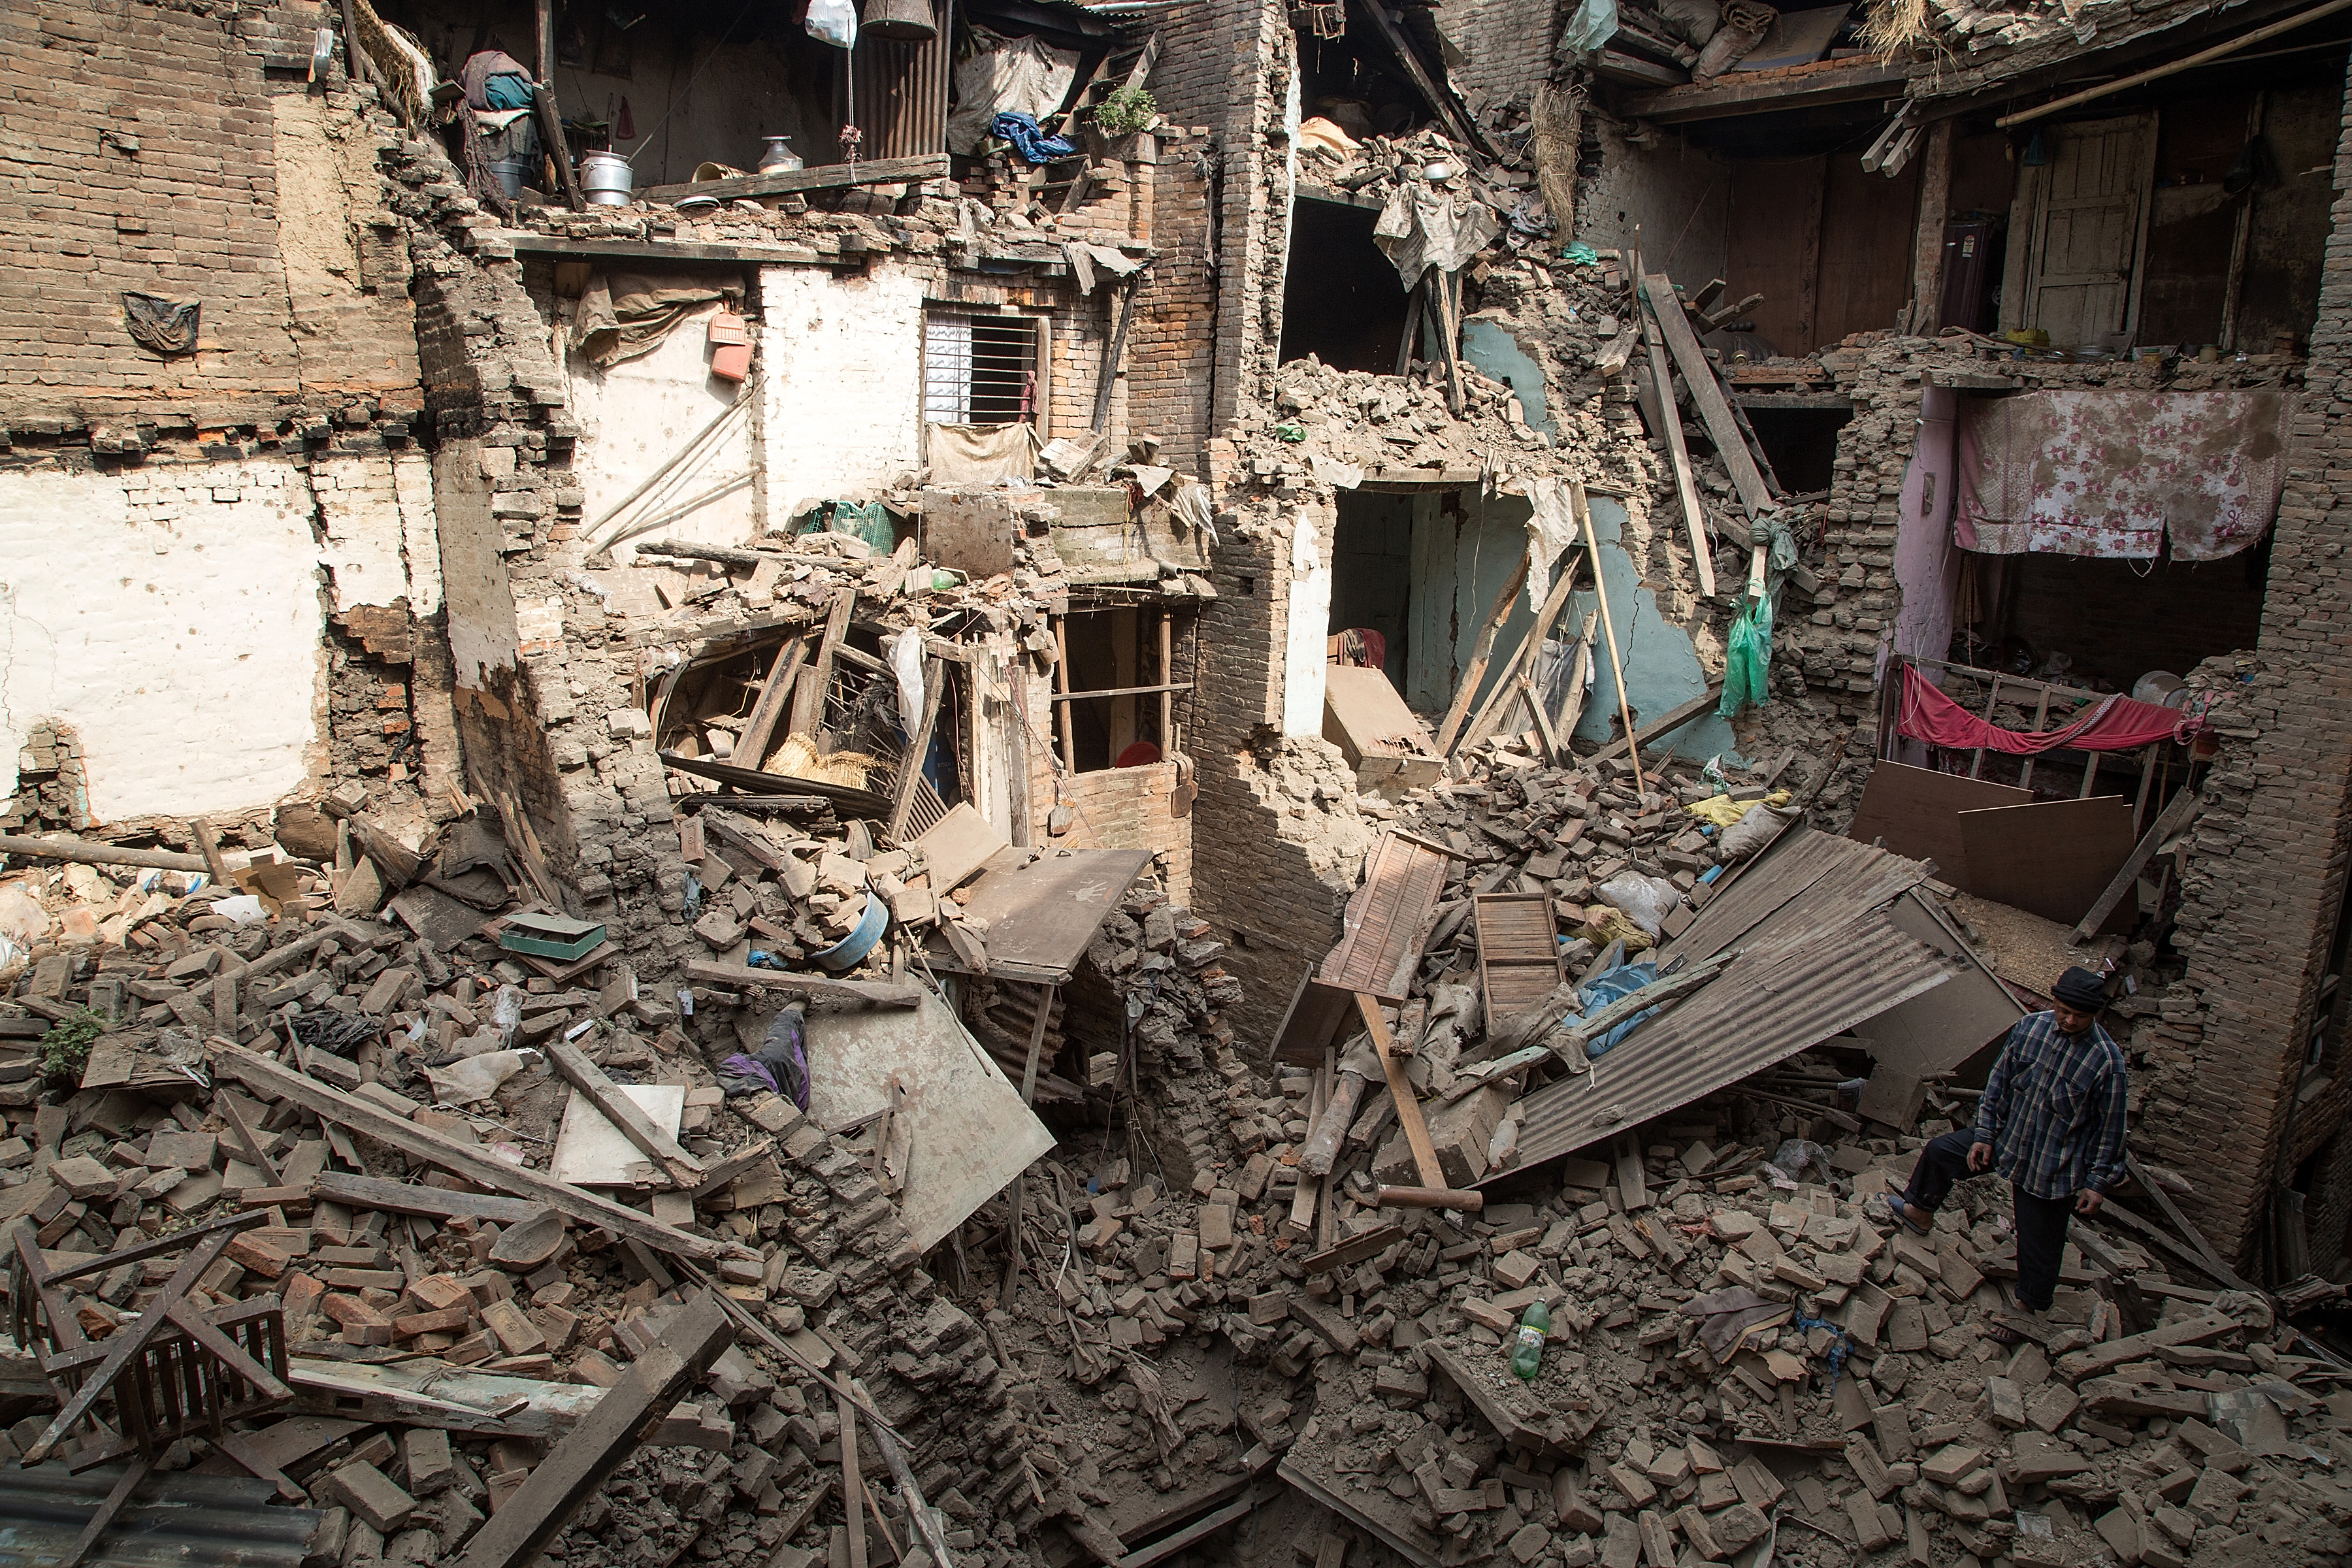 <> on April 26, 2015 in Kathmandu, Nepal. A major 7.8 earthquake hit Kathmandu mid-day on Saturday, and was followed by multiple aftershocks that triggered avalanches on Mt. Everest that buried mountain climbers in their base camps. Many houses, buildings and temples in the capital were destroyed during the earthquake, leaving thousands dead or trapped under the debris as emergency rescue workers attempt to clear debris and find survivors.